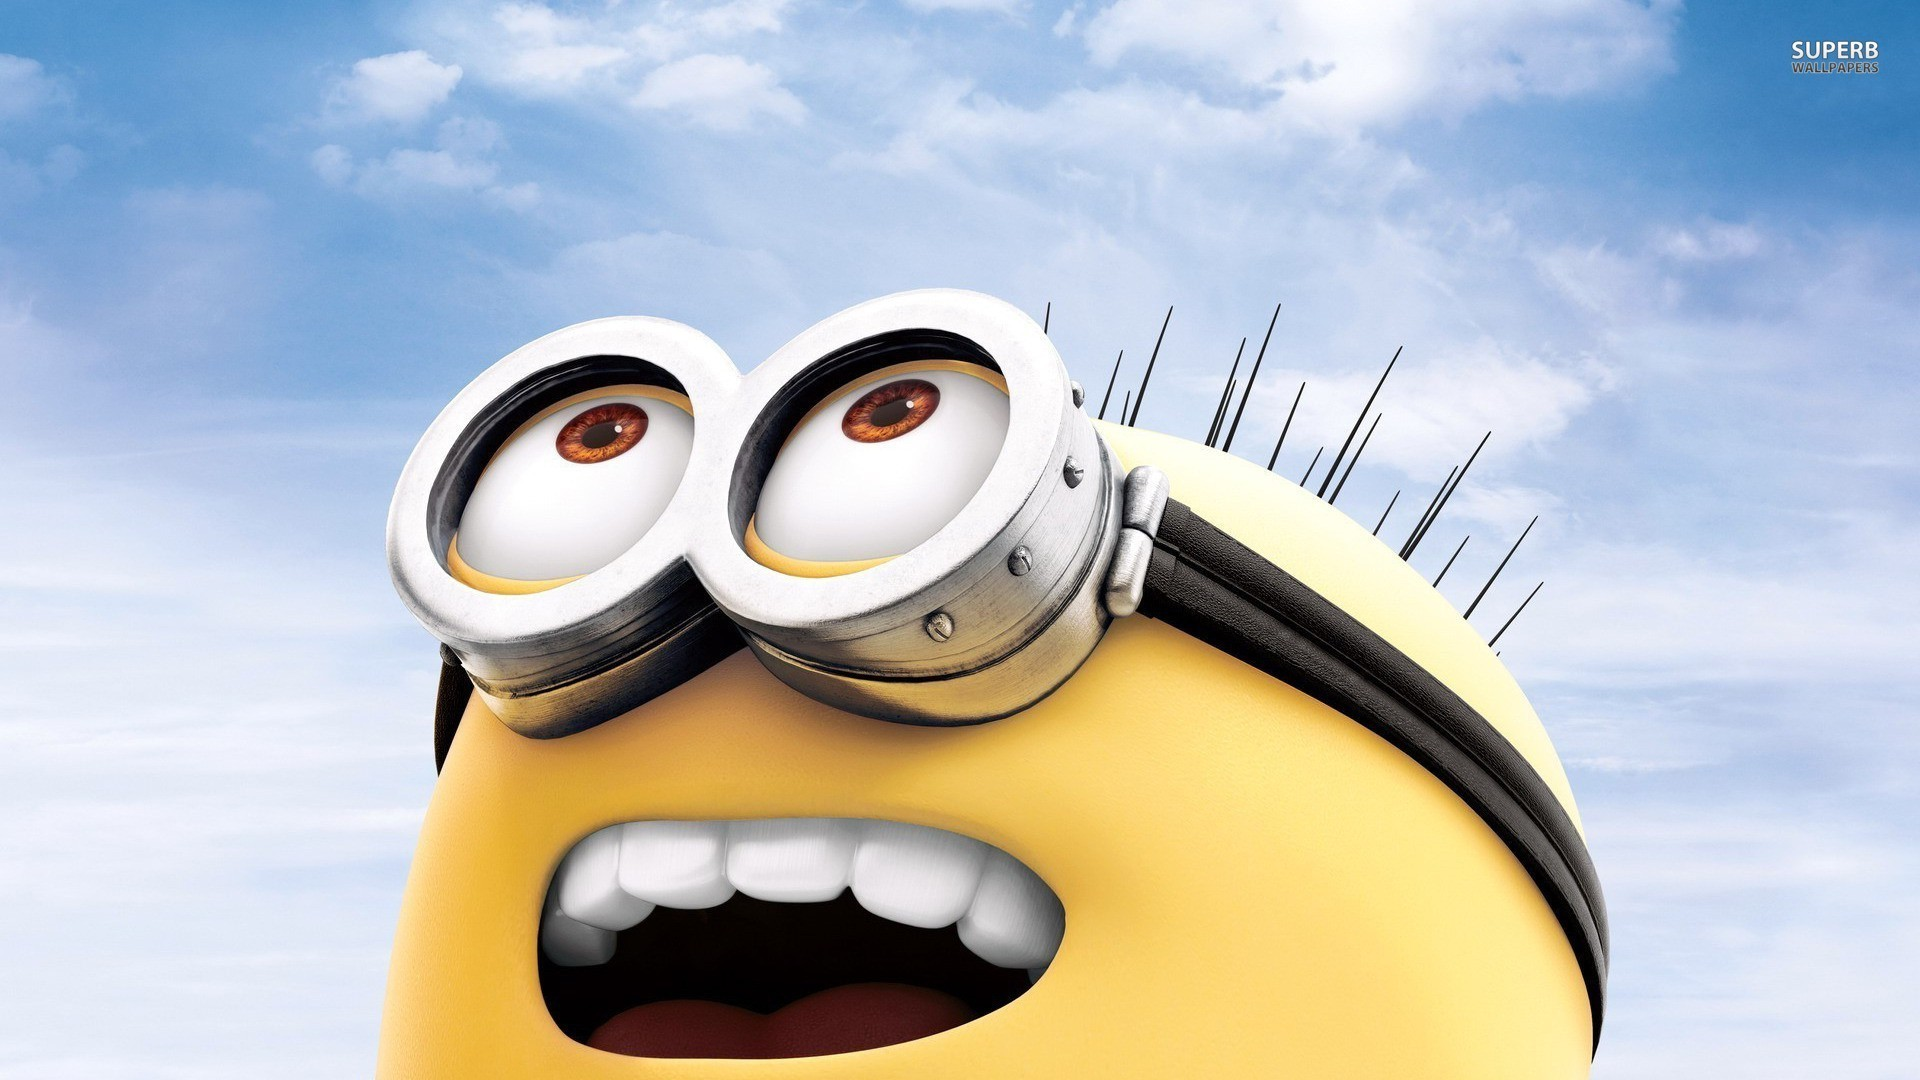 minion iphone wallpaper hd – photo #9. I Refuse to Believe This Rumor About  the iPhone With No